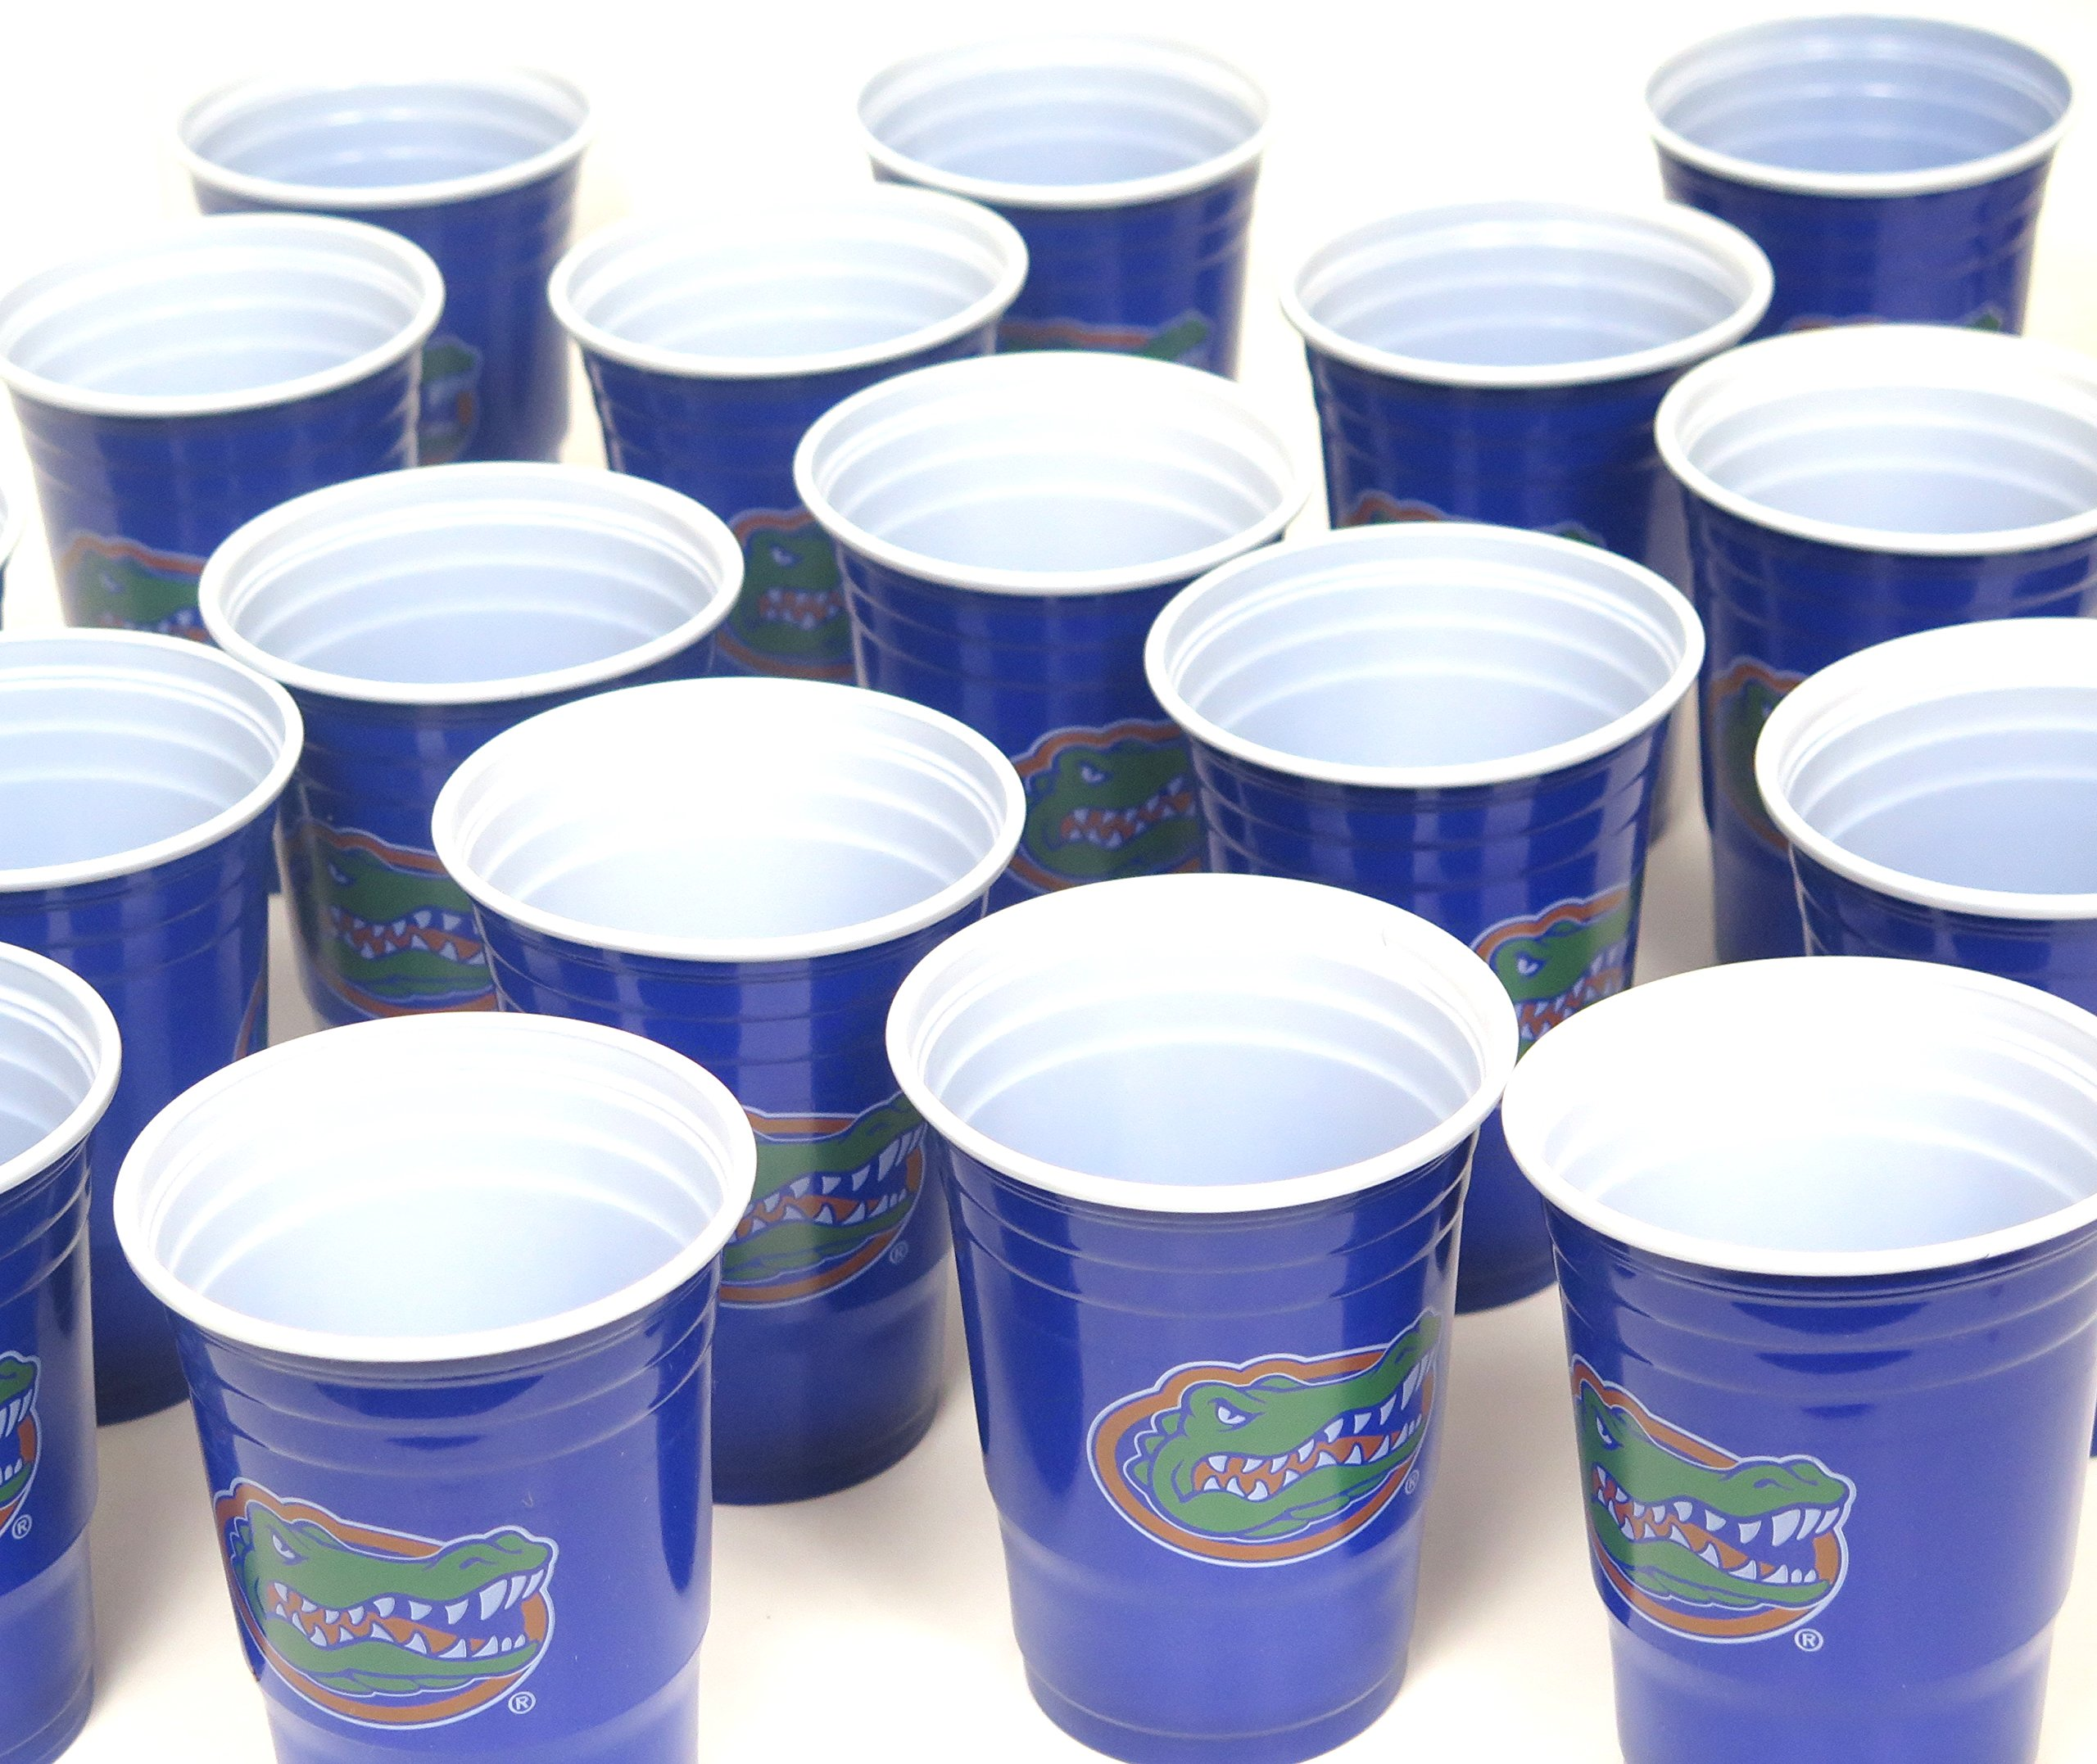 Florida Gators barbecue cookout 4th of July Jumbo party cups set of 36. Large plastic colorful 18 oz, game day plastic cups.